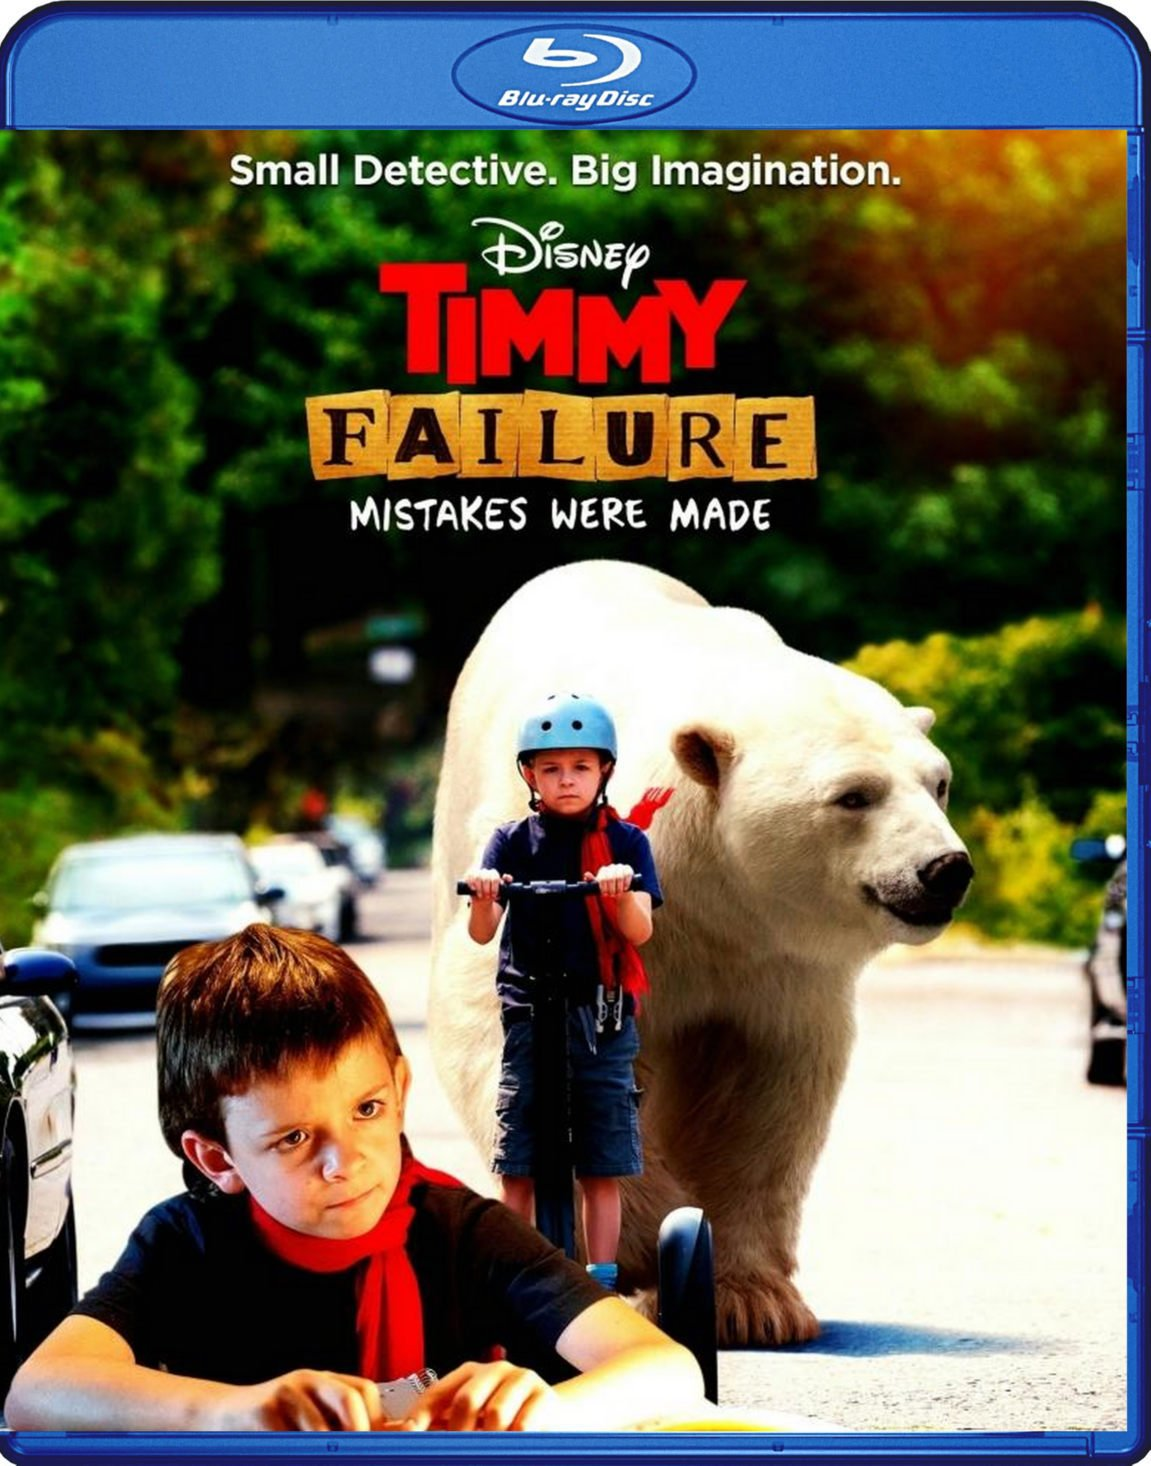 Timmy Failure Mistakes Were Made Blu-Ray Disney